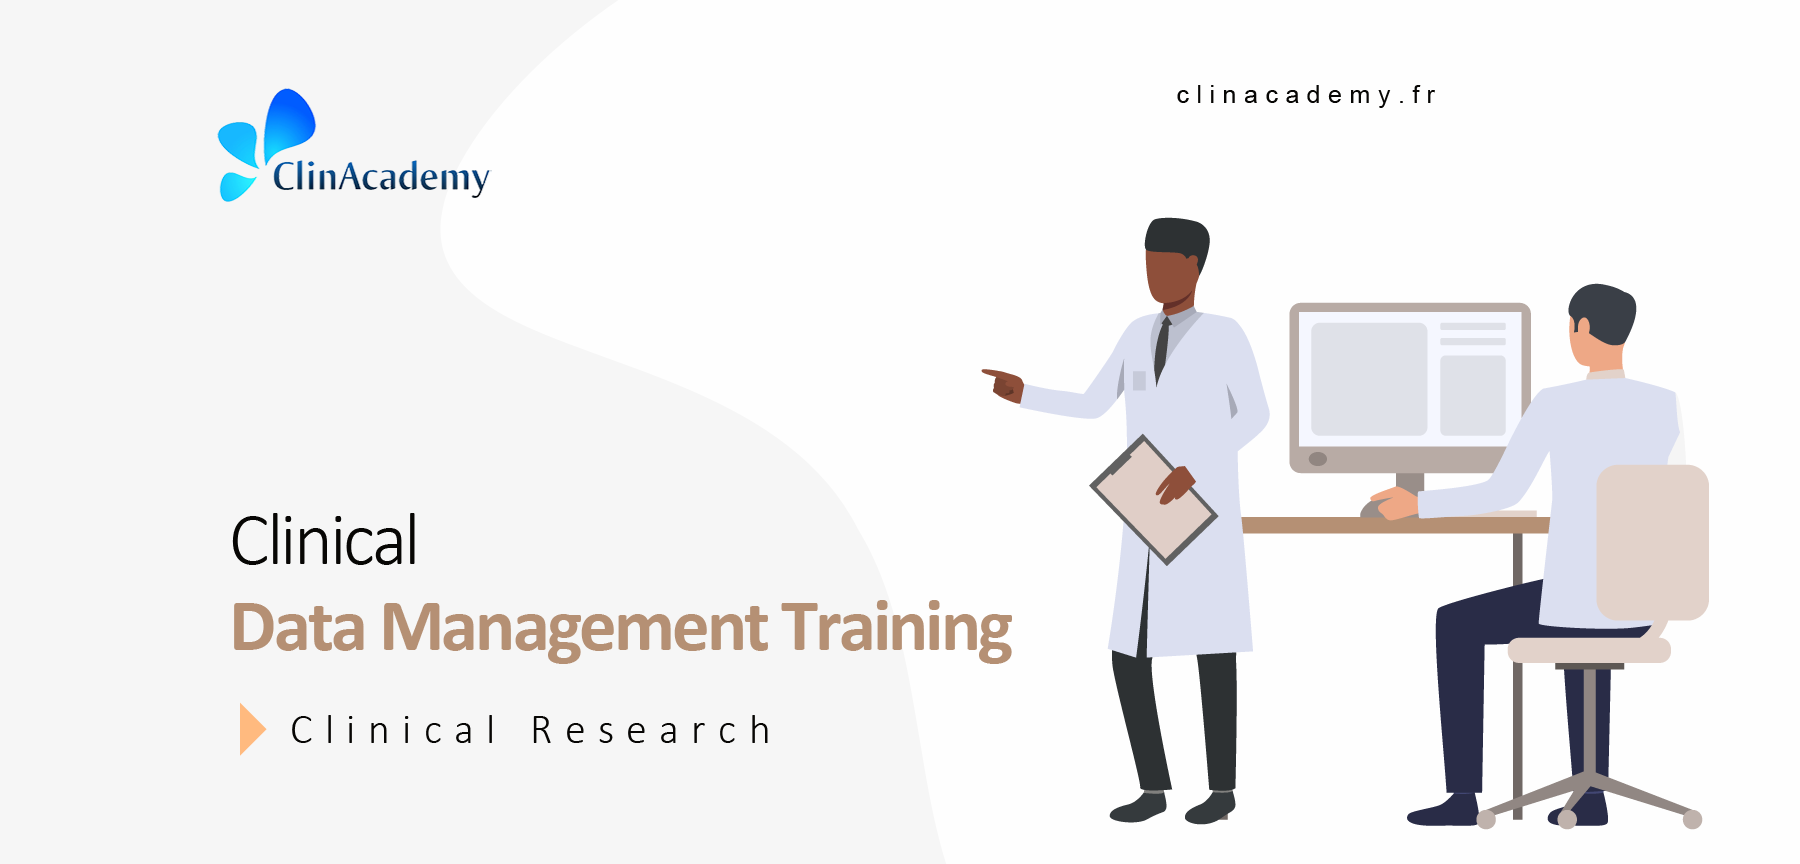 Clinical Data Management Training